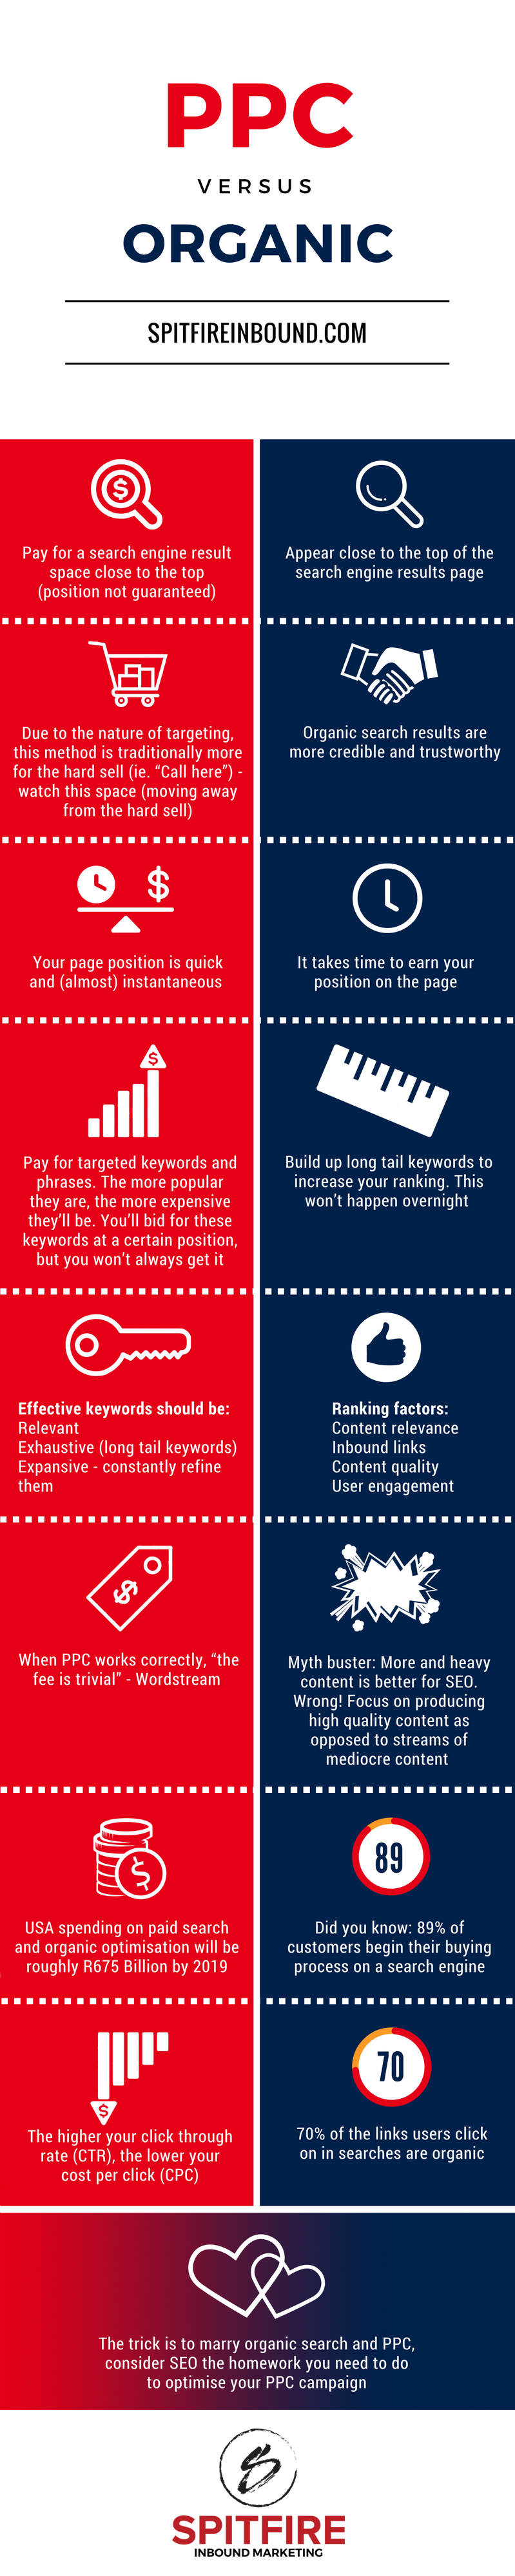 Spitfire Inbound Marketing | PPC vs. SEO Infographic